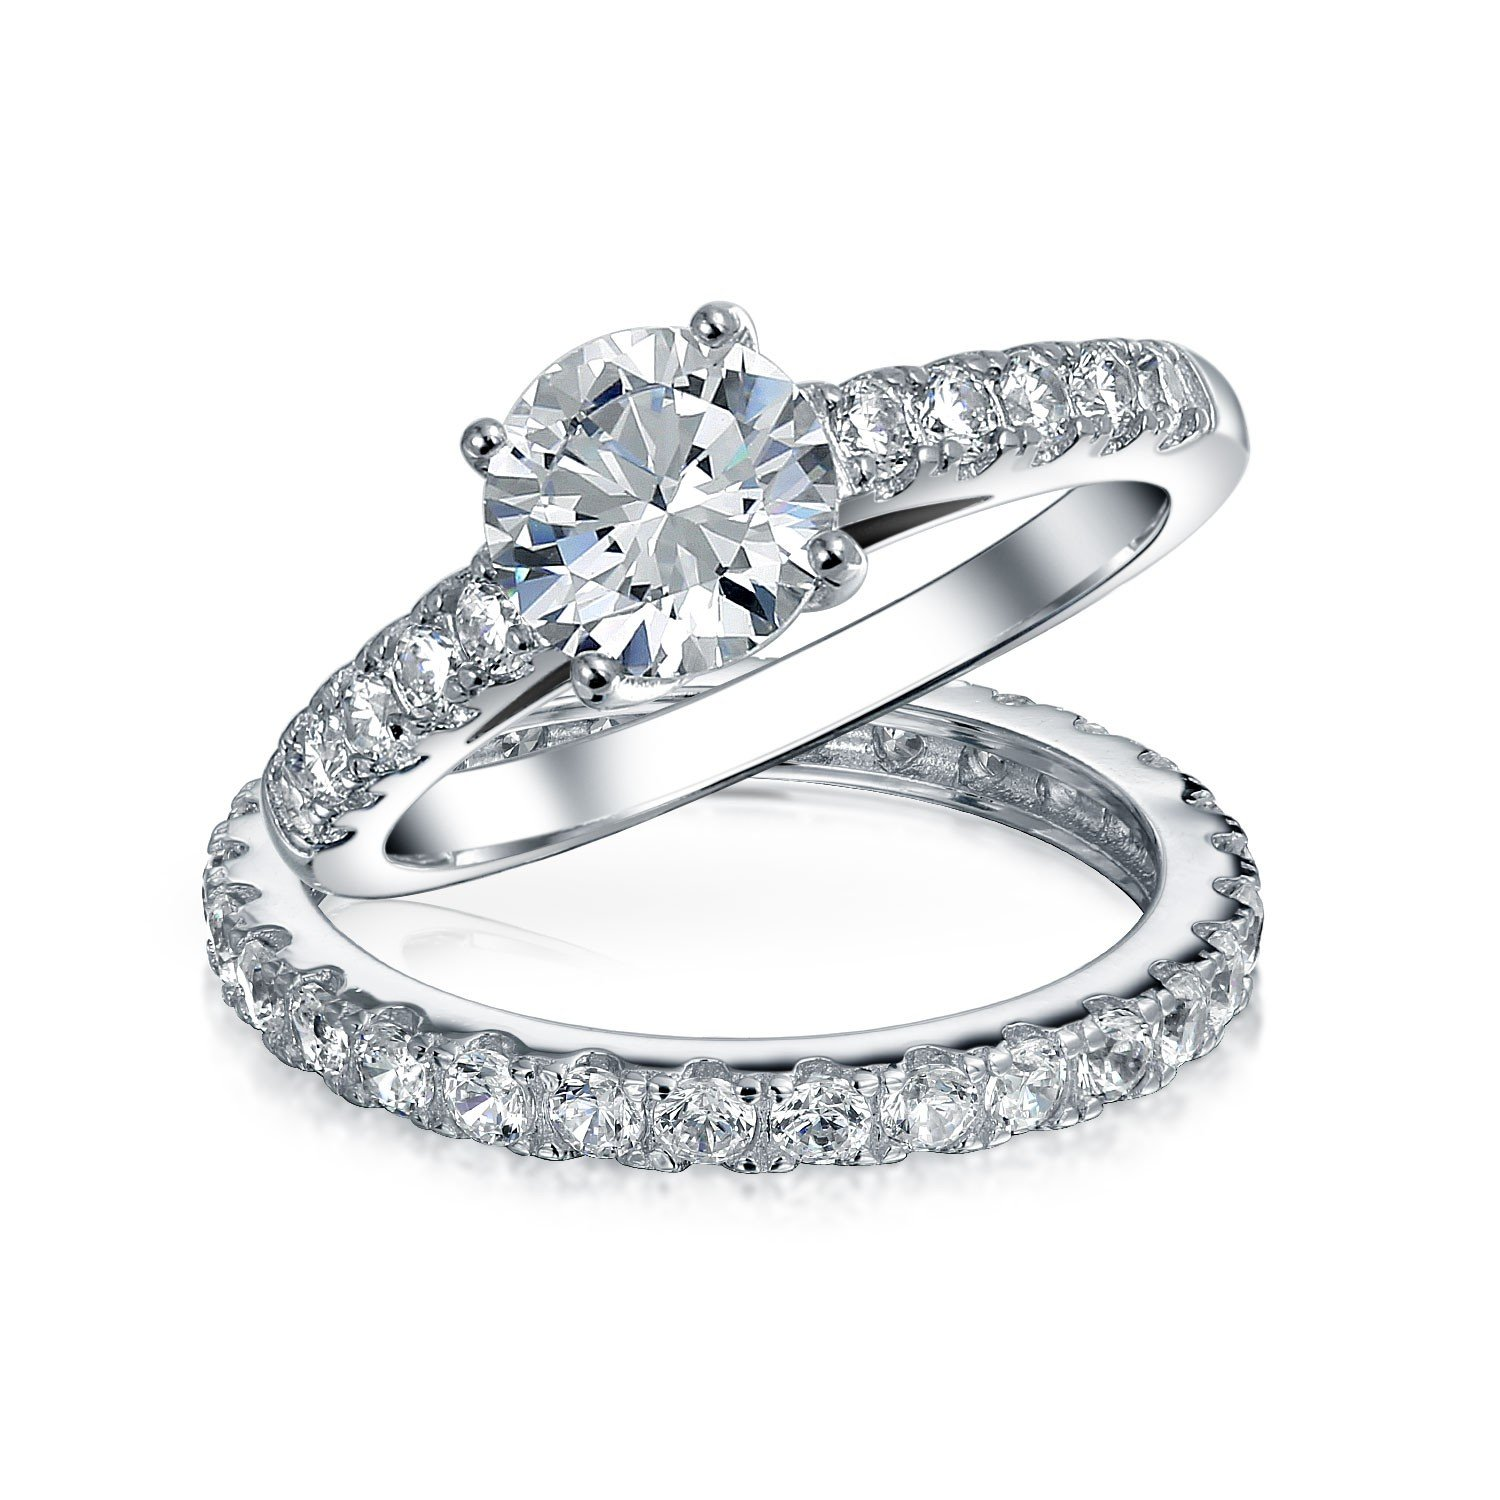 Engagement Rings 101: Terms You Should Know